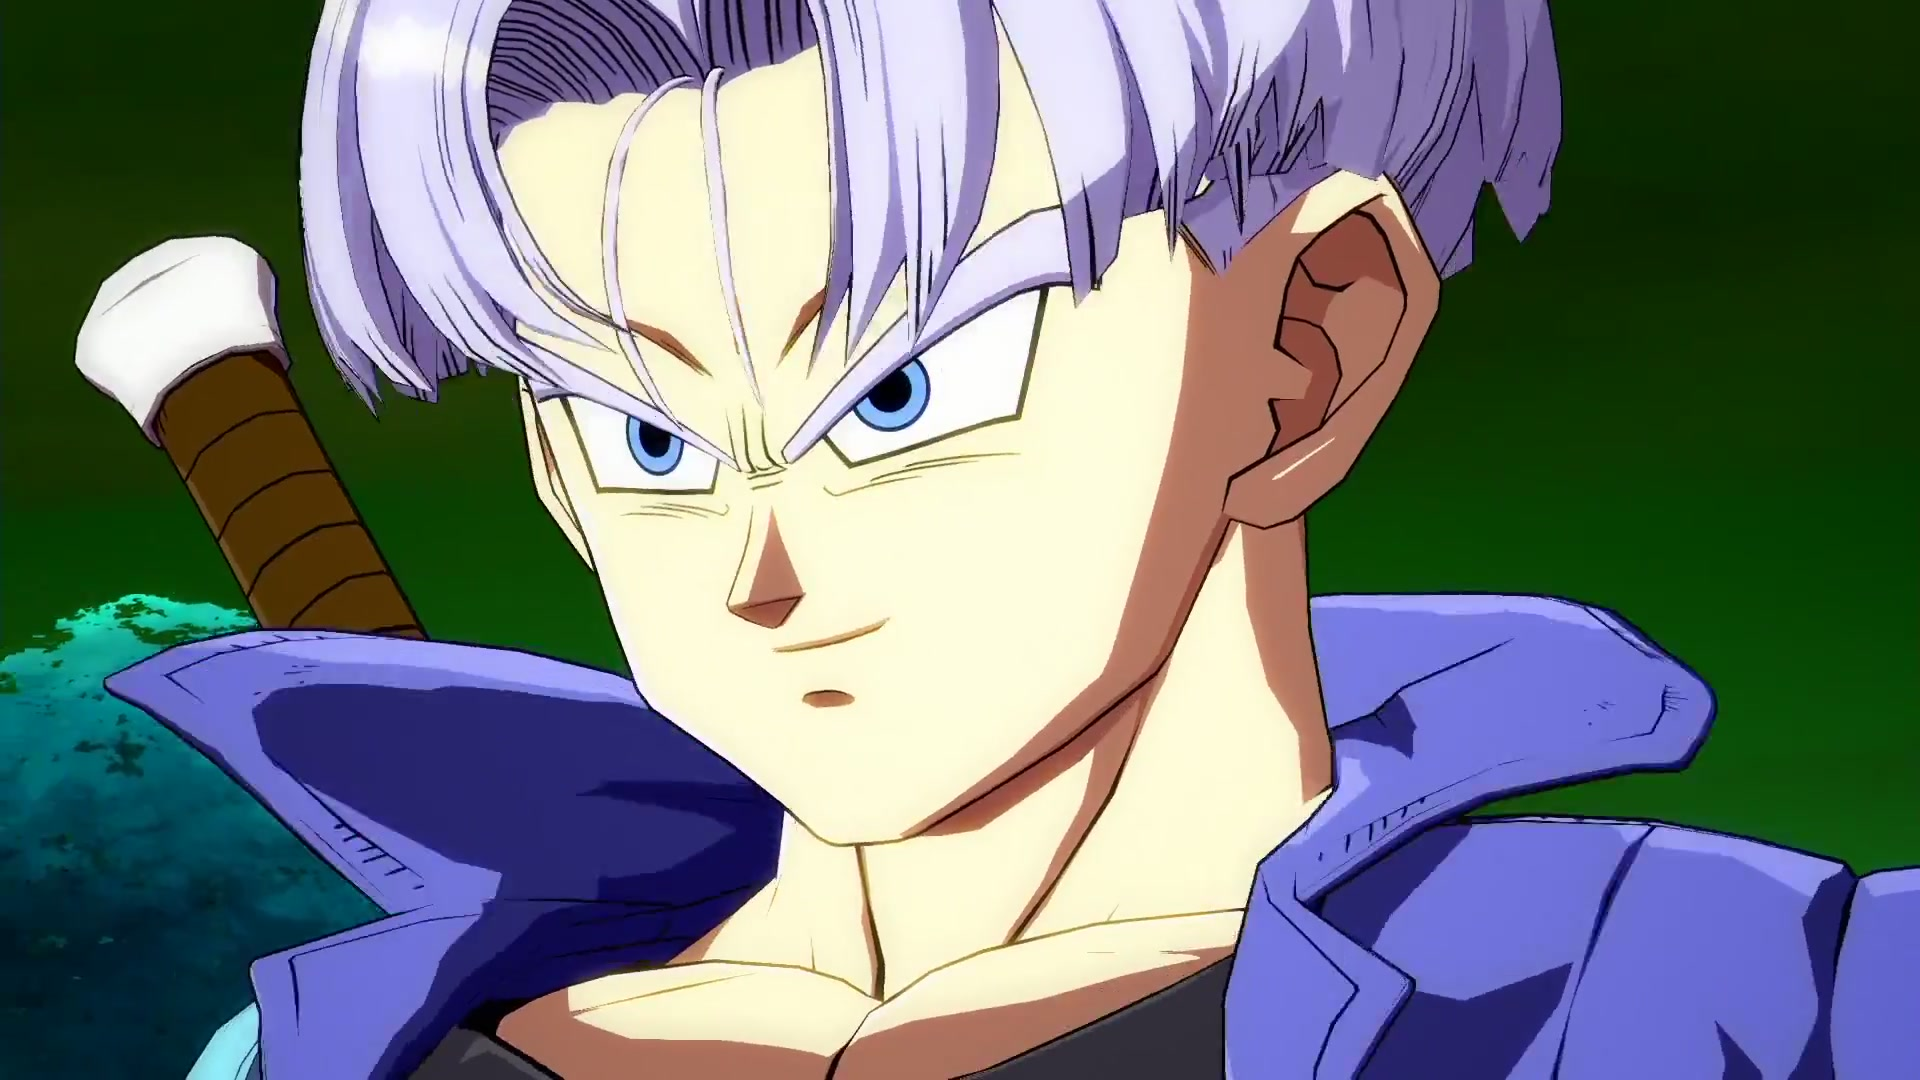 Trunks in Dragon Ball FighterZ 1 out of 12 image gallery